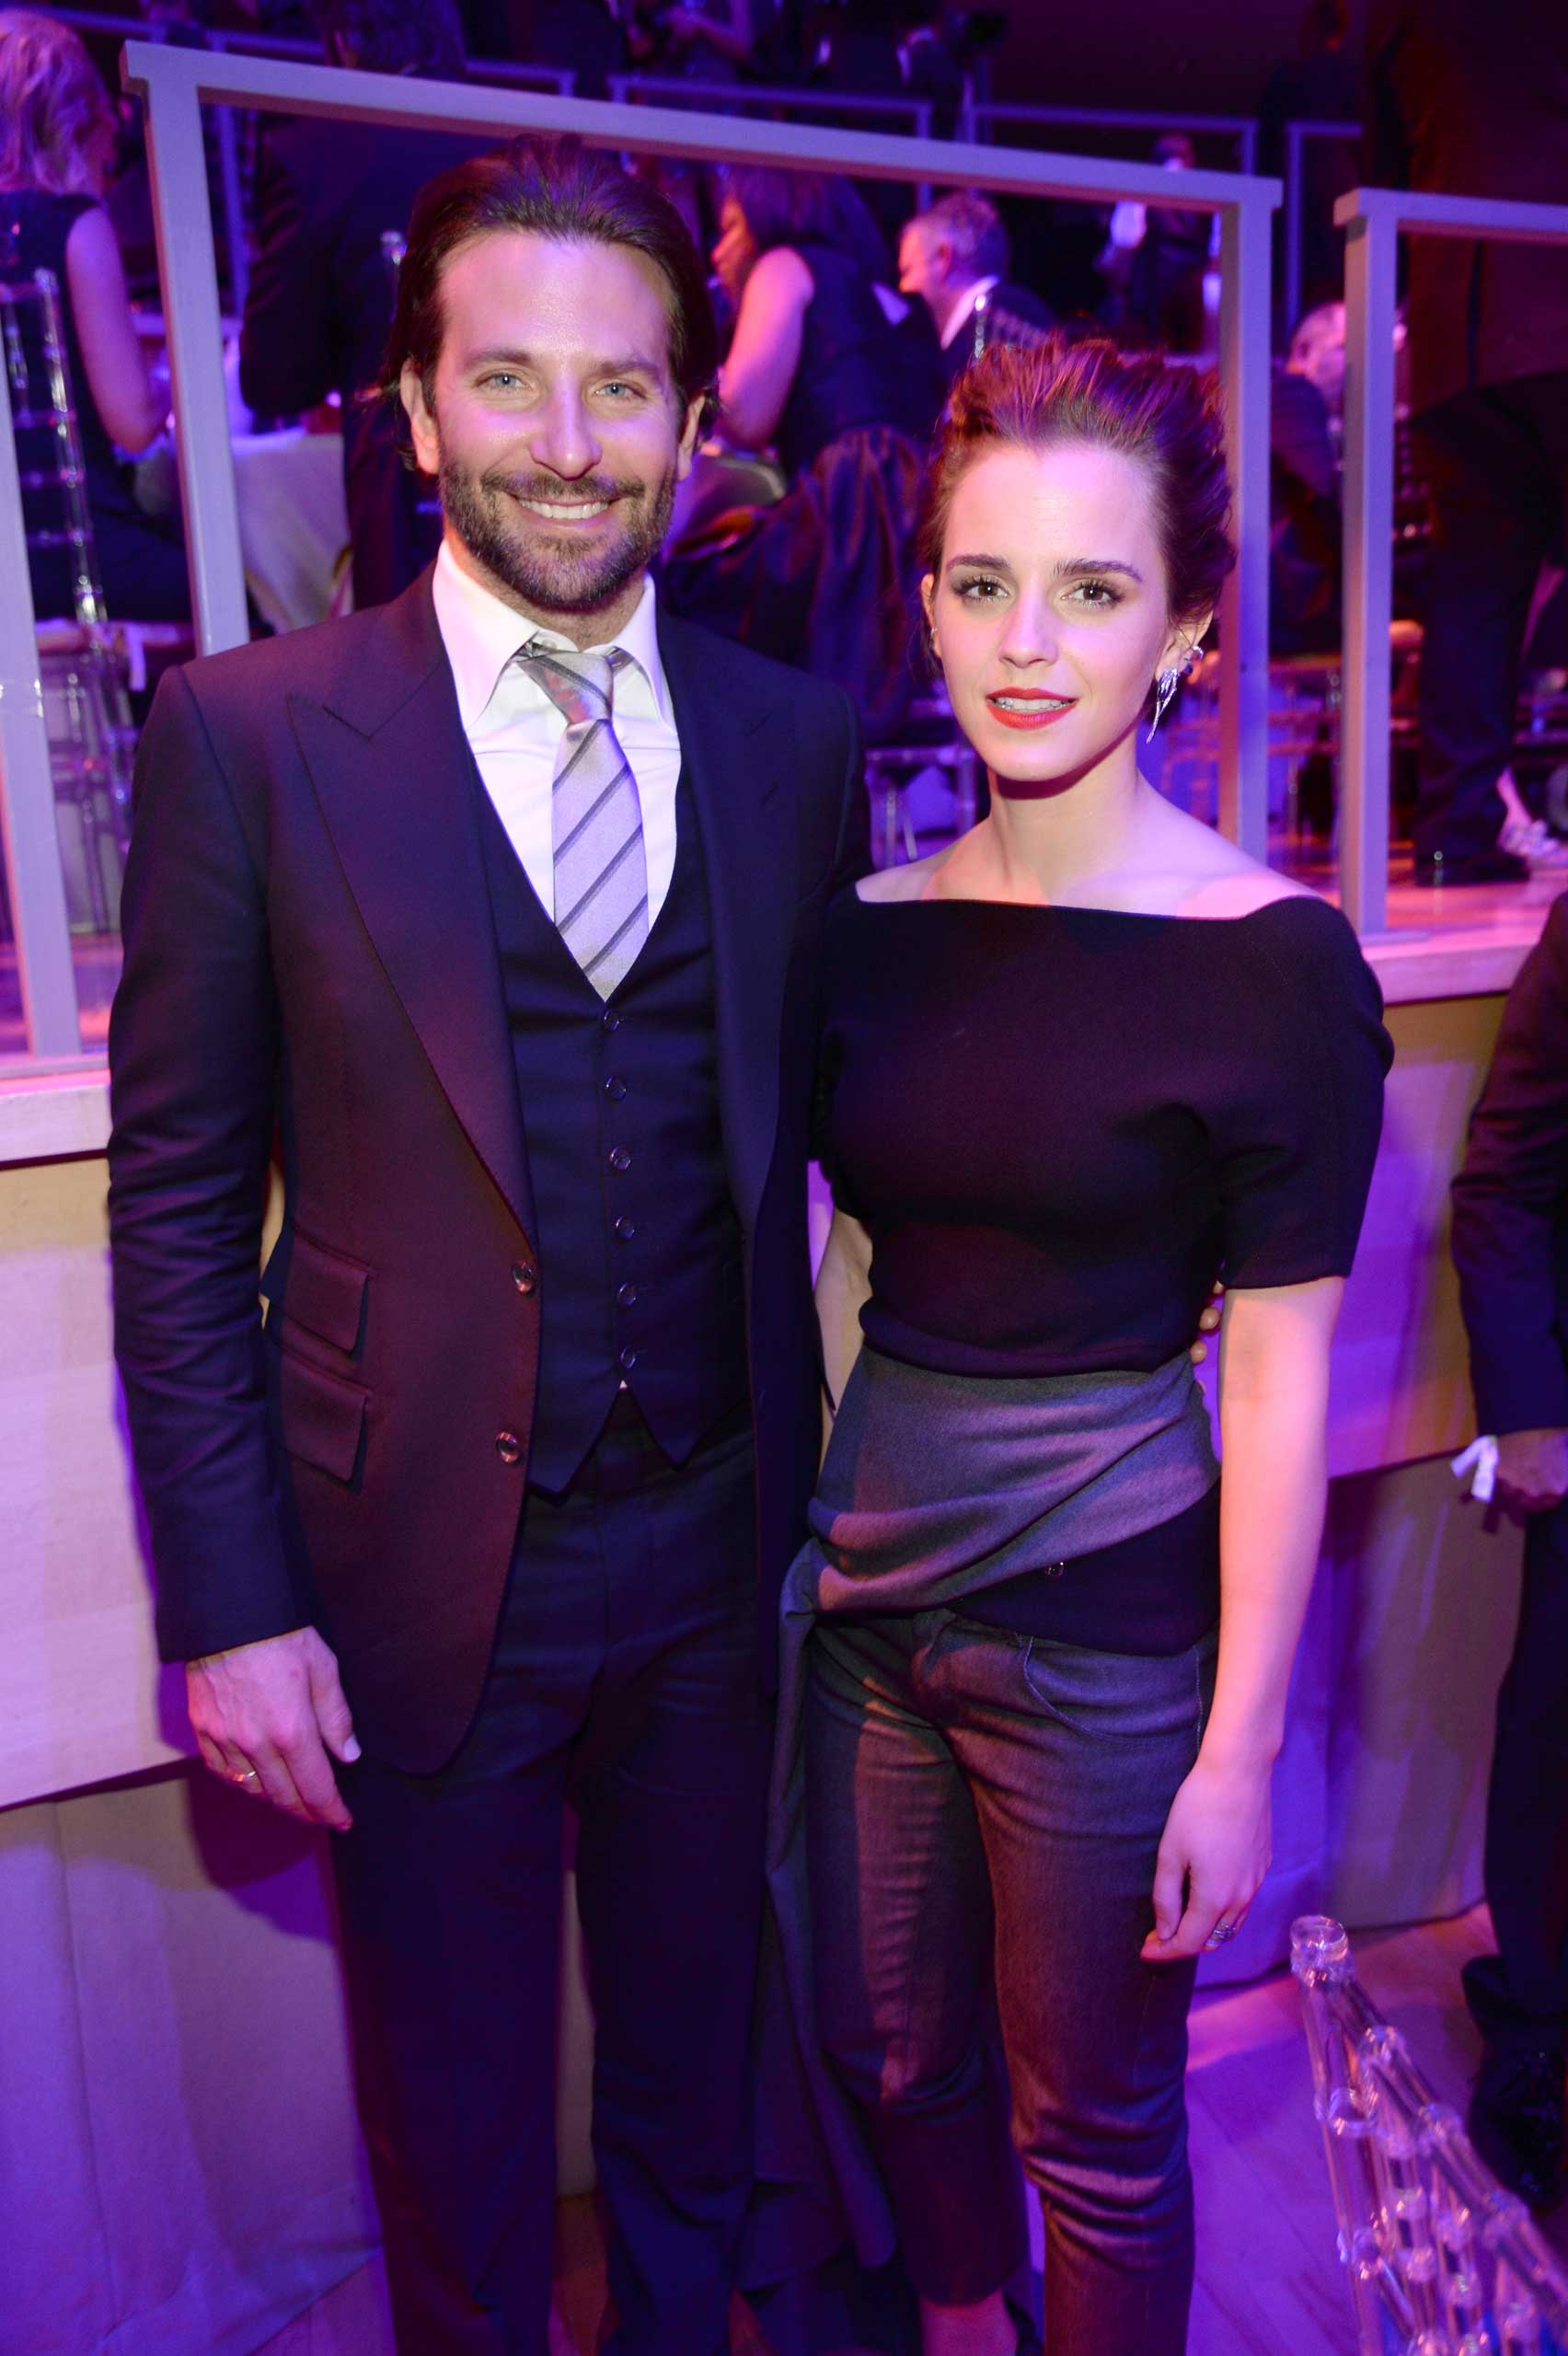 Bradley Cooper and Emma Watson attend the TIME 100 Gala at Jazz at Lincoln Center in New York City on April 21, 2015.